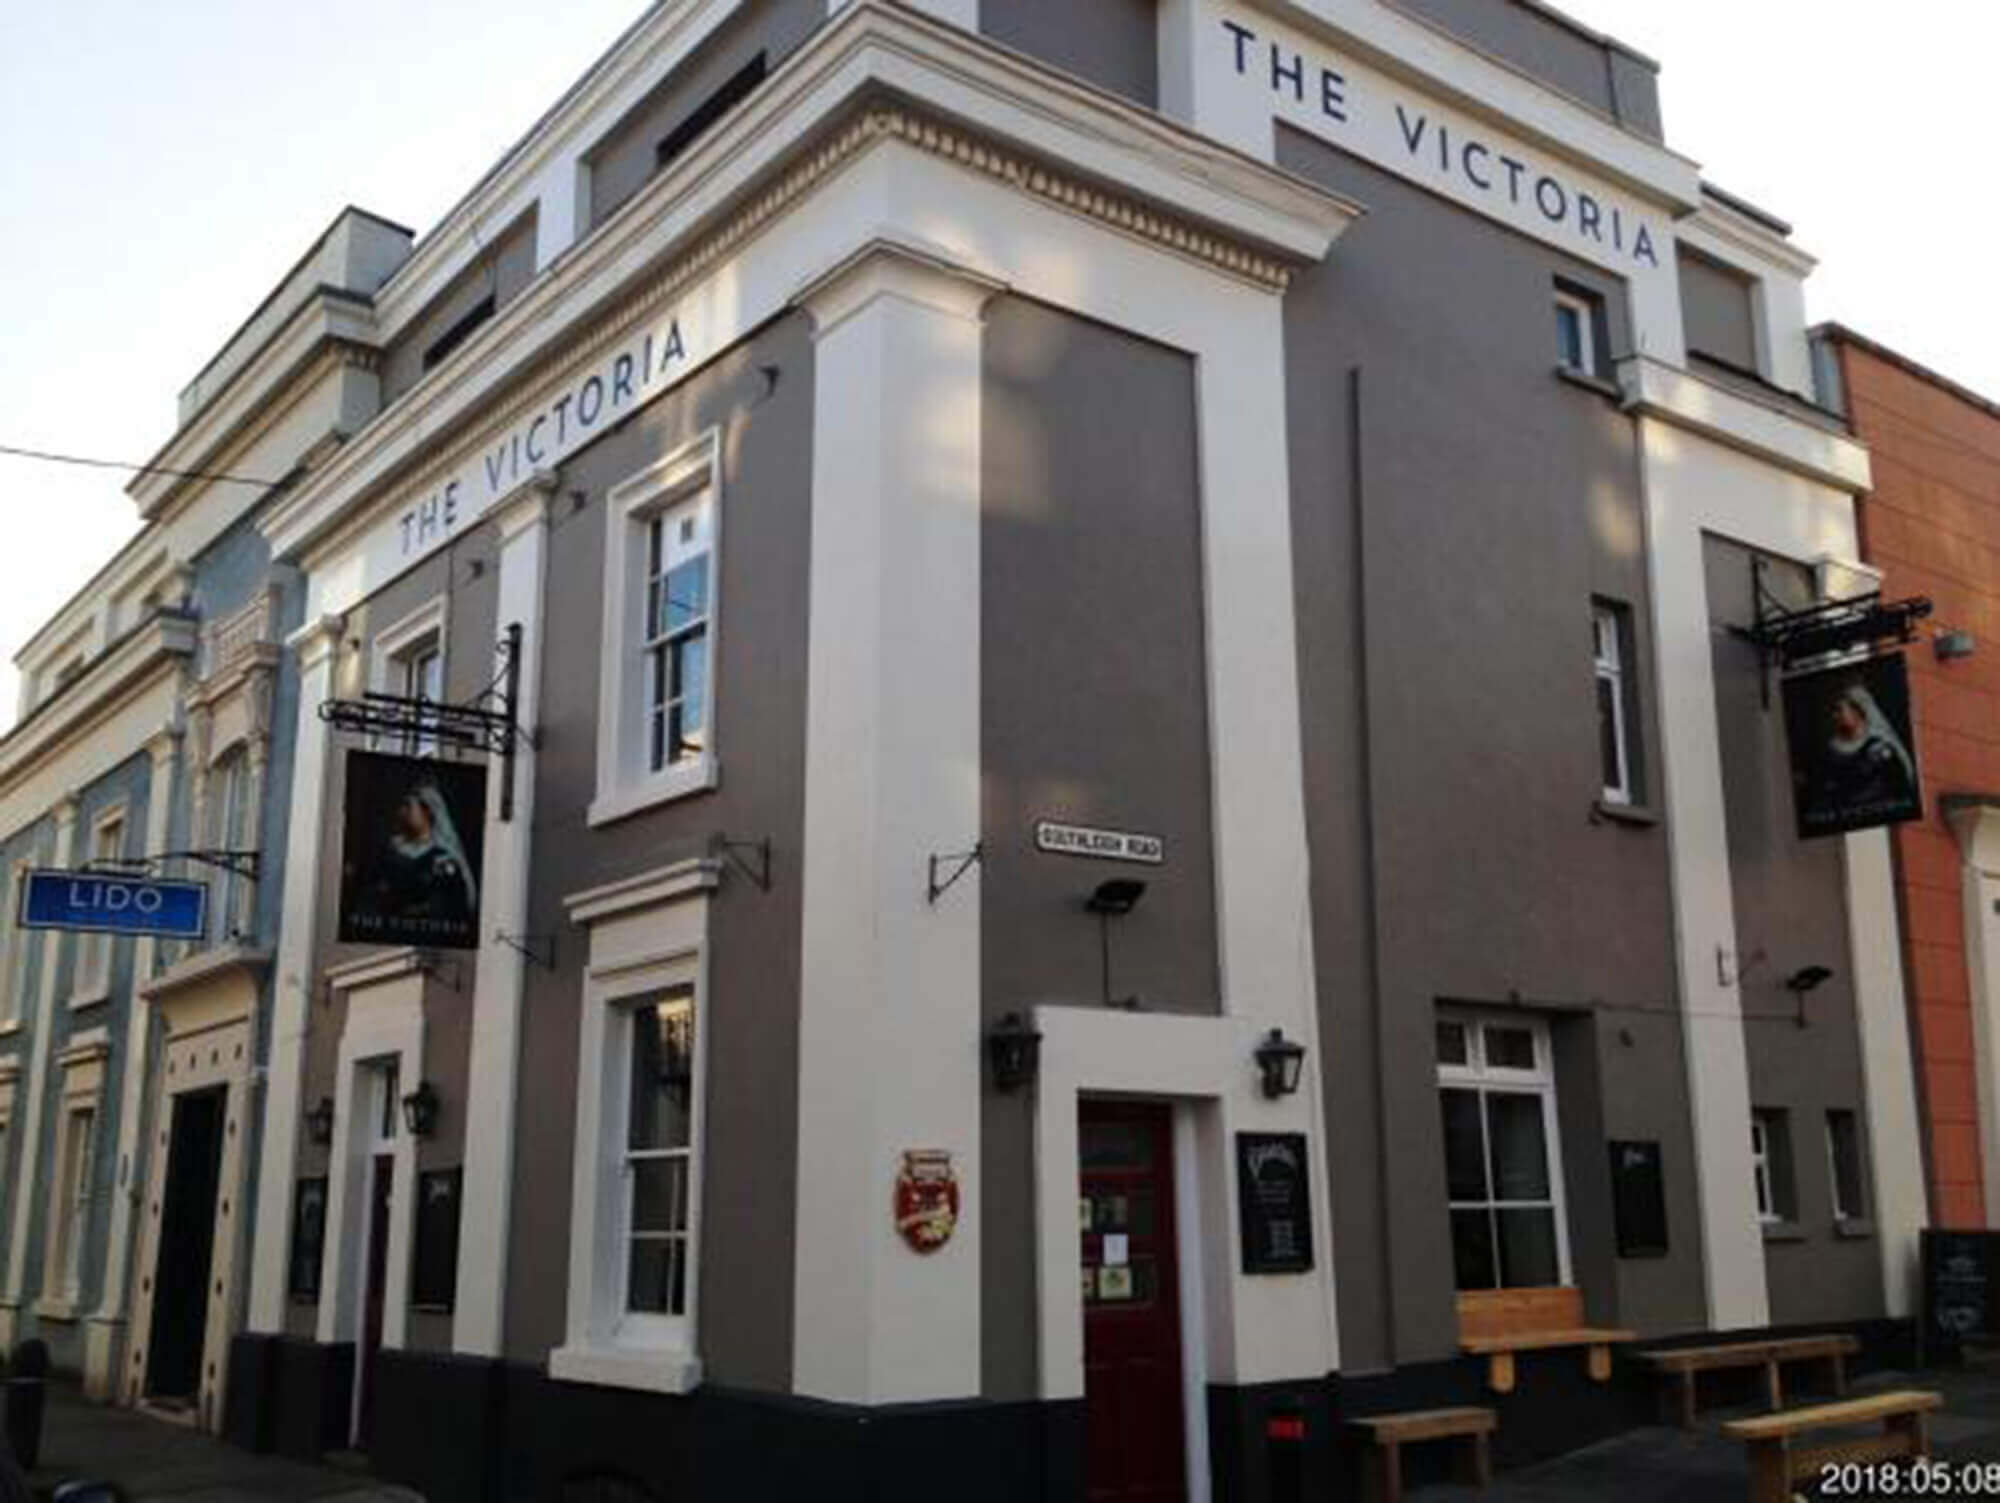 The Victoria Ale House